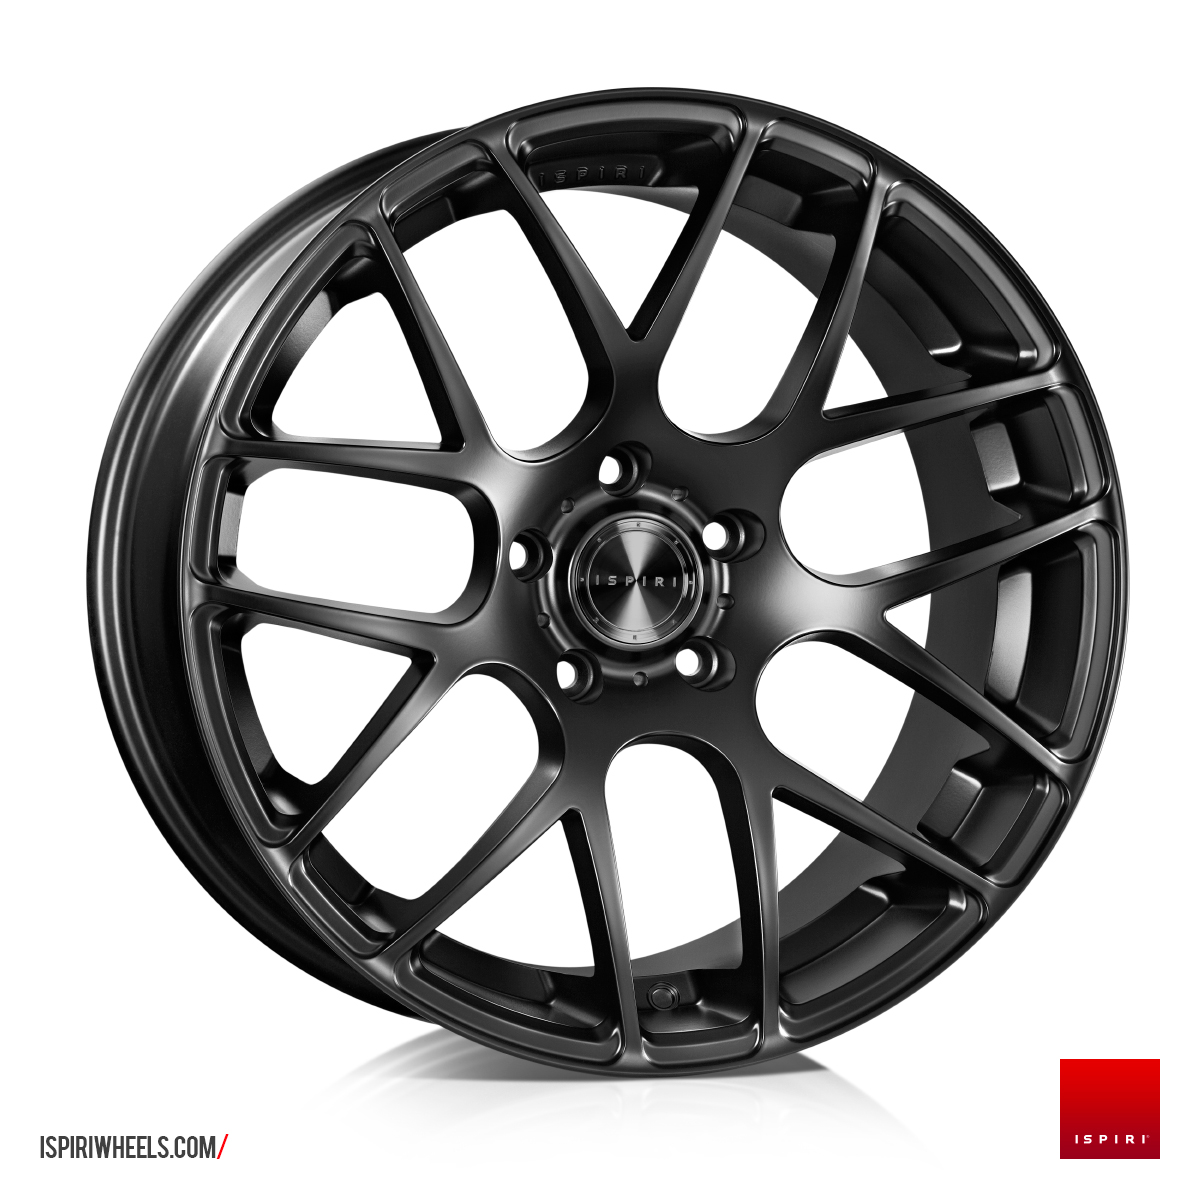 "NEW 20"" ISPIRI ISR1 CROSS SPOKE ALLOY WHEELS IN MATT BLACK, WIDER 10"" REAR"